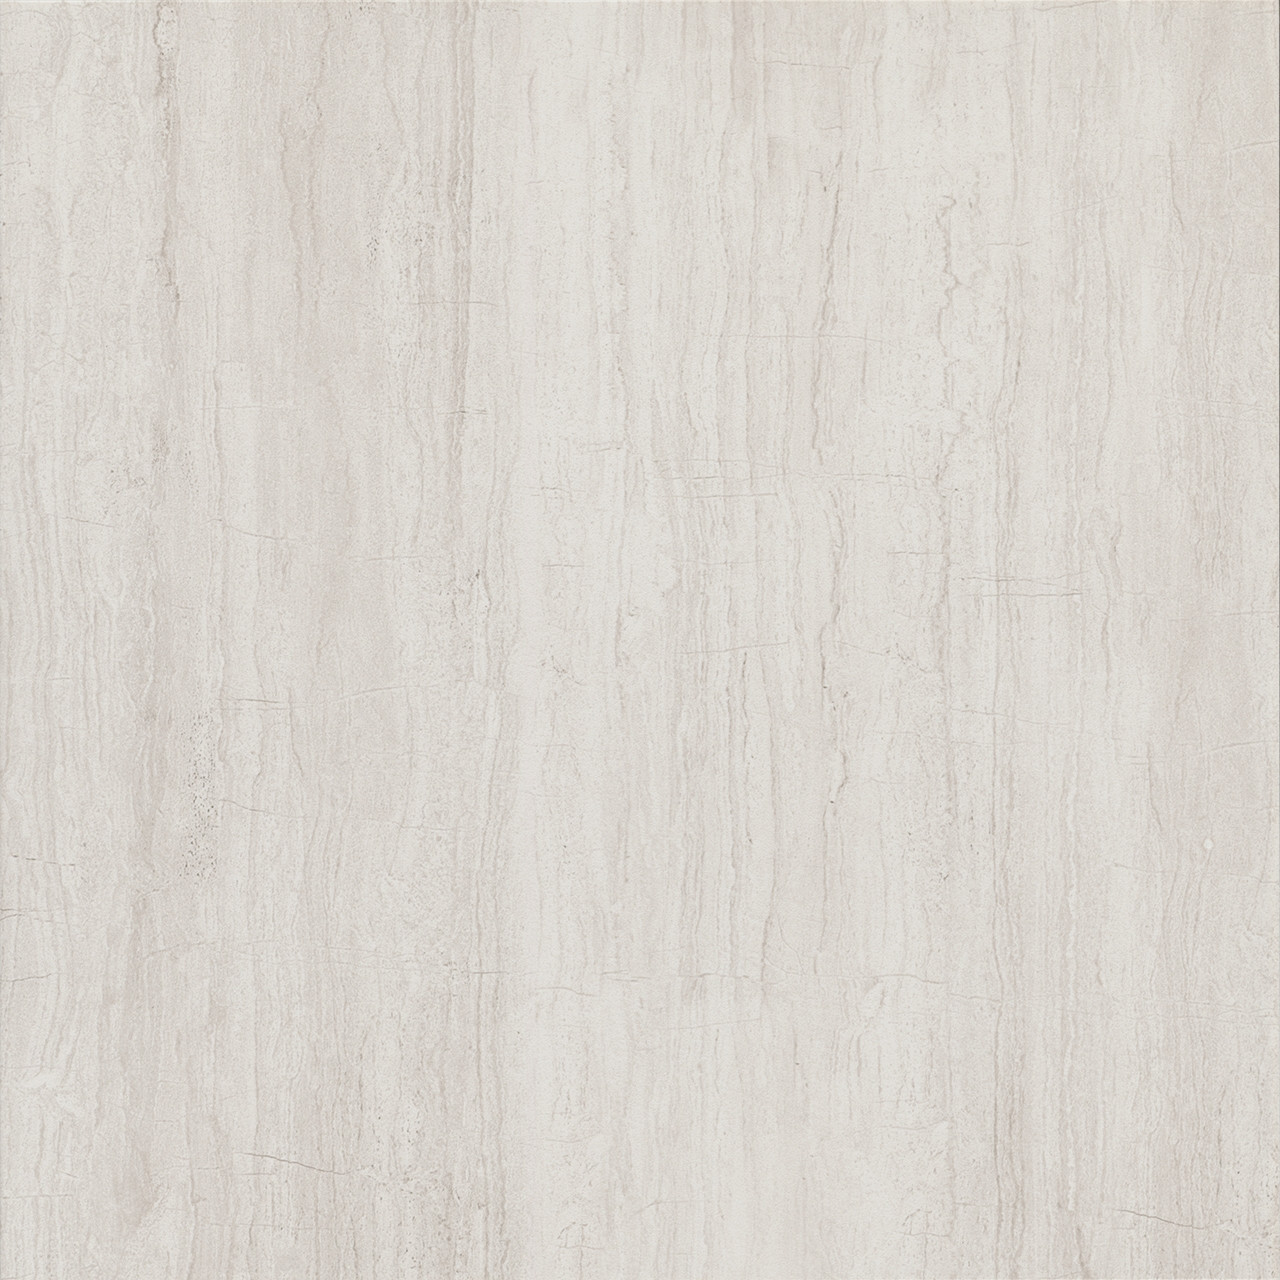 Serpentine White 45cm x 45cm Porcelain Tile